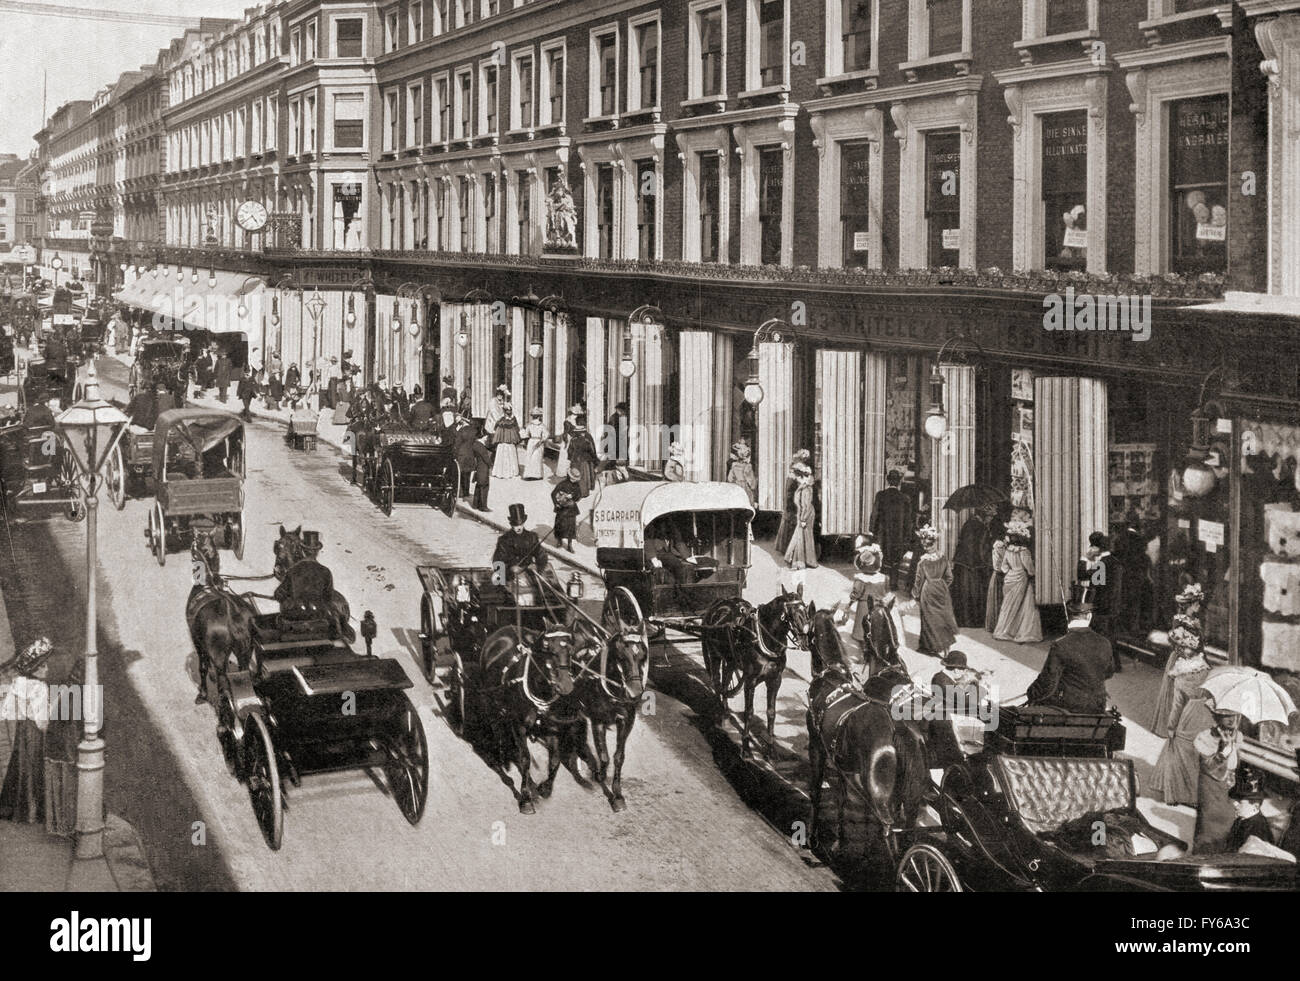 A view of Westbourne Grove, London, England in the early 20th century. - Stock Image